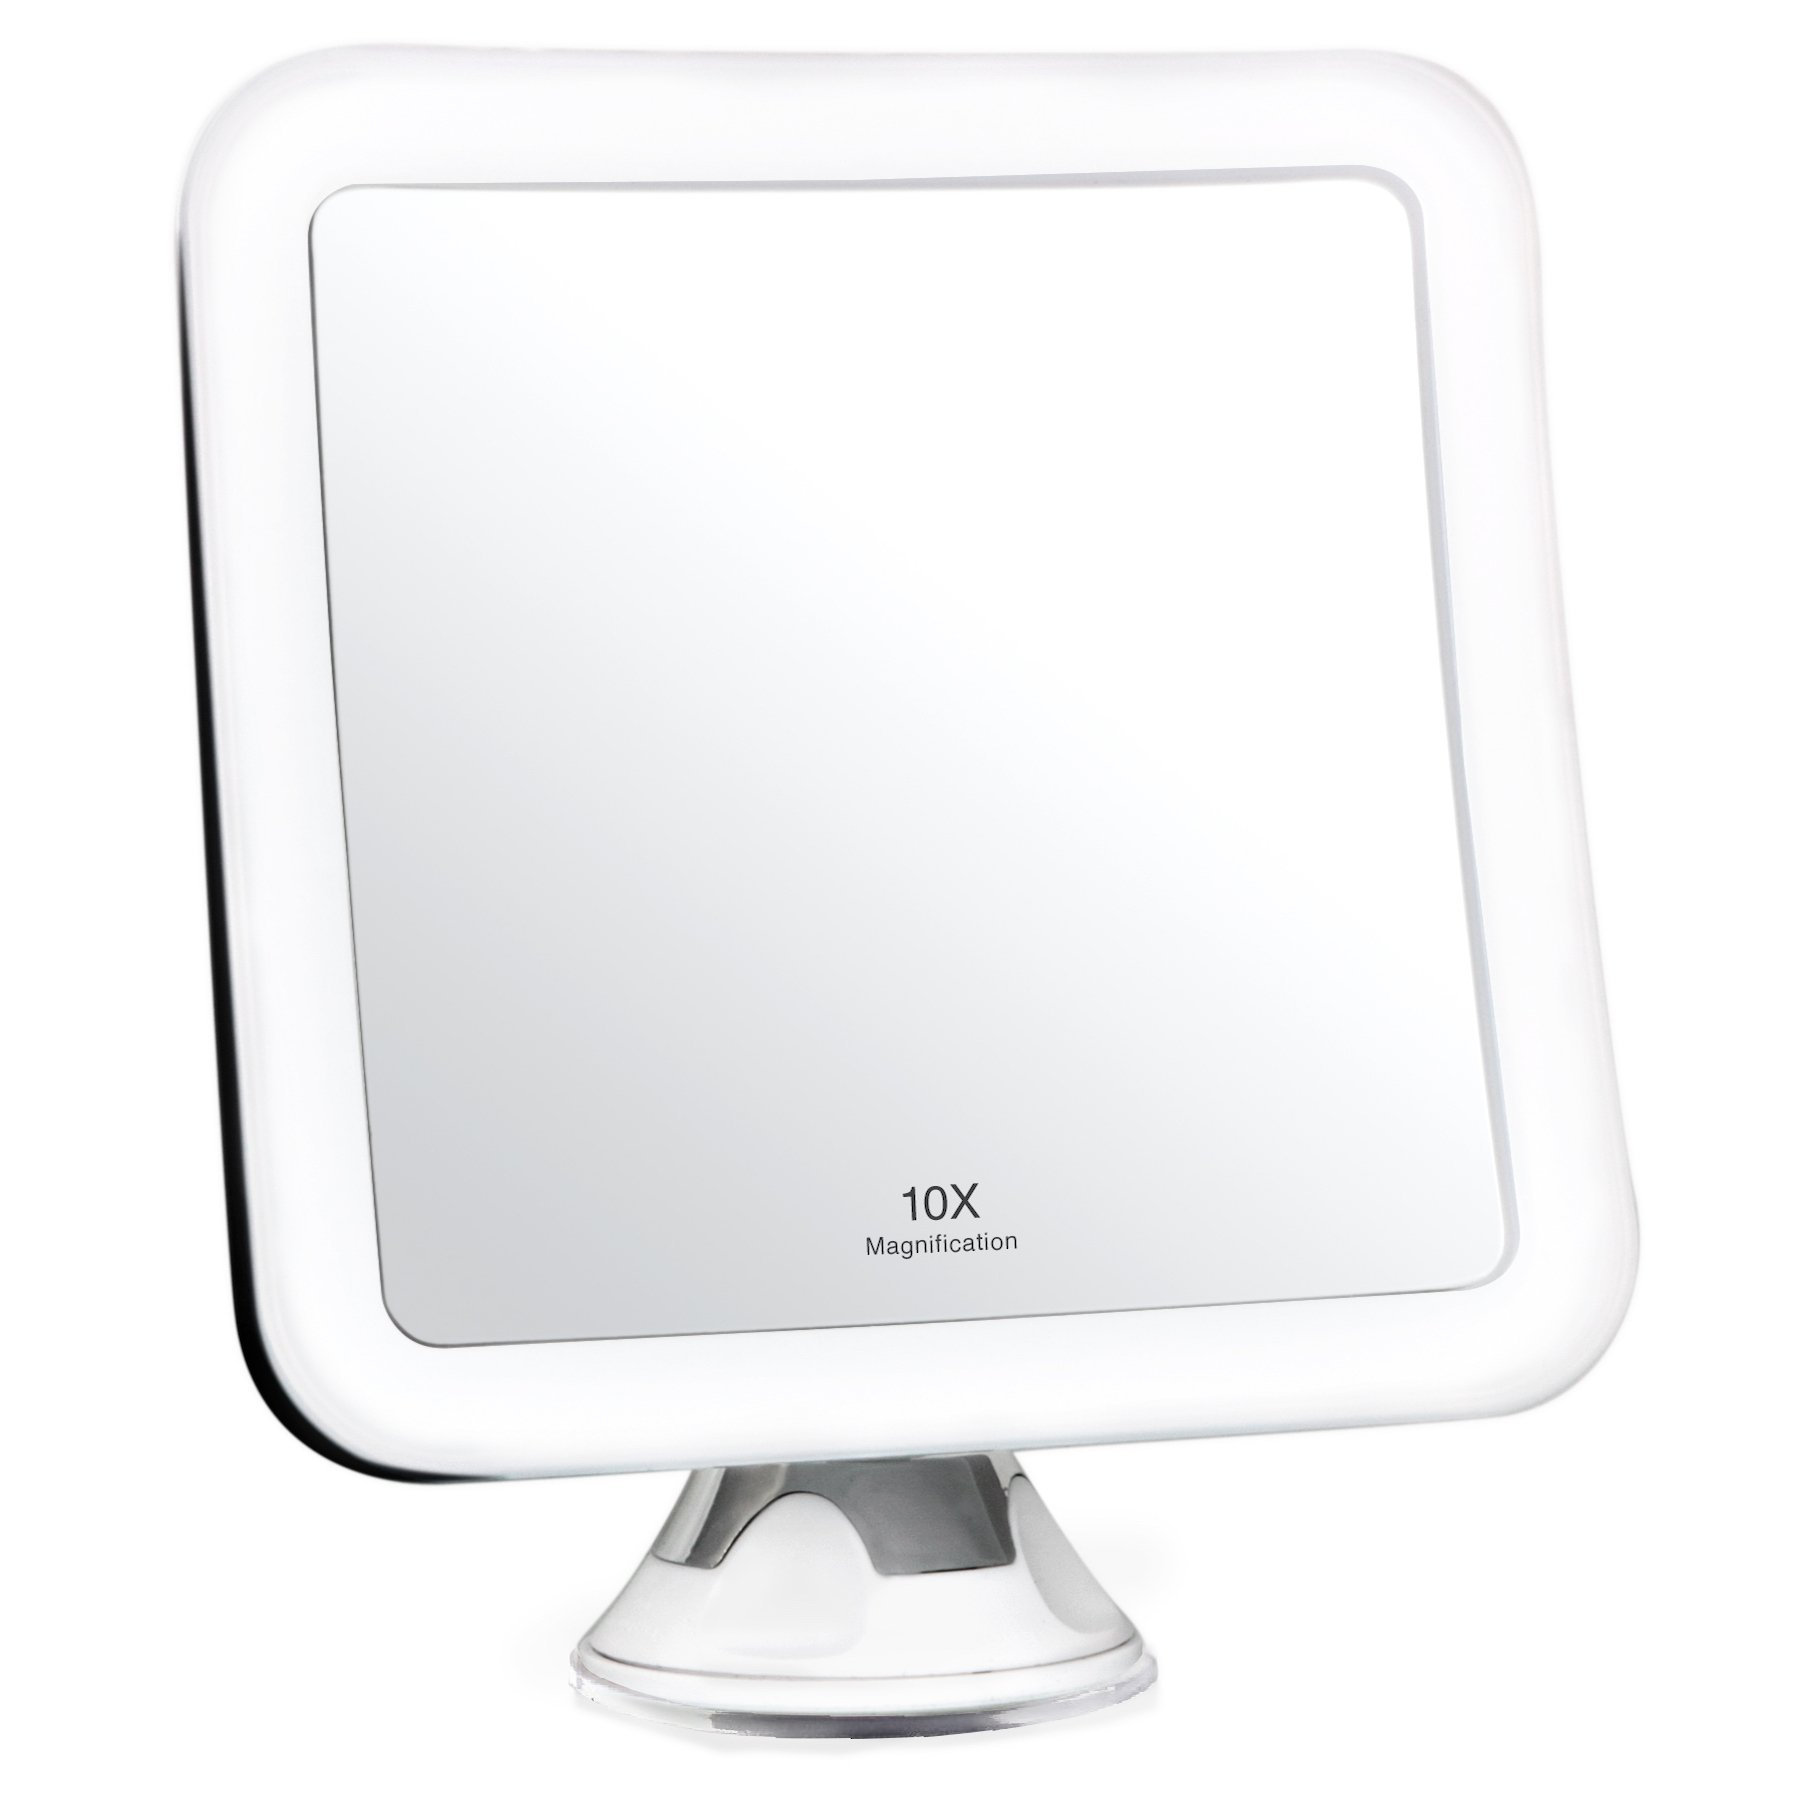 Fancii 10X Magnifying Lighted Makeup Mirror - Daylight LED Vanity Mirror - Compact, Cordless, Locking Suction, 6.5'' Wide, 360 Rotation, Portable Illuminated Bathroom Mirror (Square) by Fancii